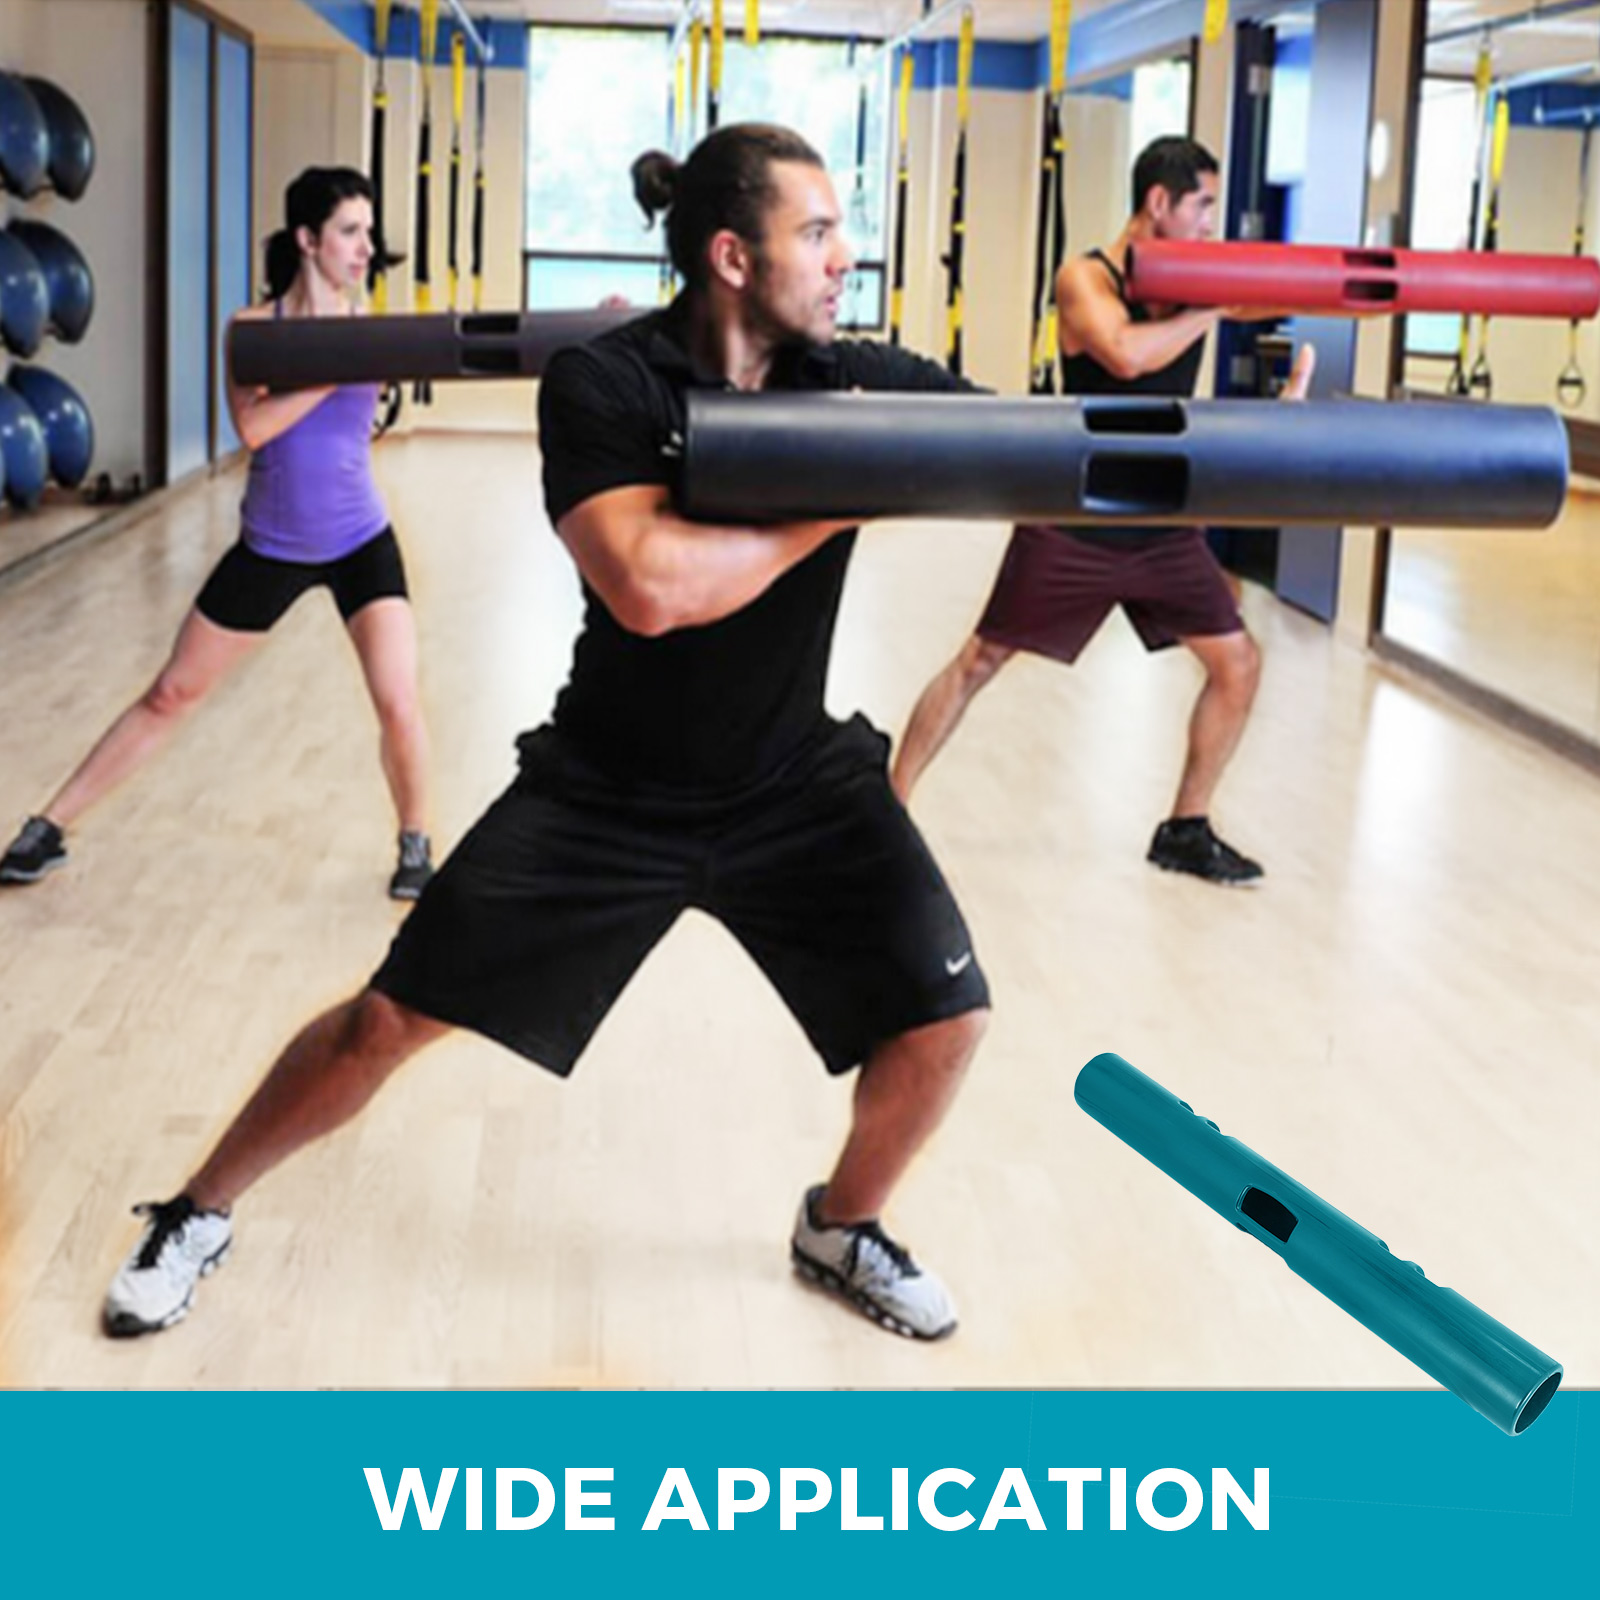 Vipr-Fitpro-Fitness-Tube-Loaded-Movement-Training-weightlifting-4-6-8-10-12-Kg thumbnail 199